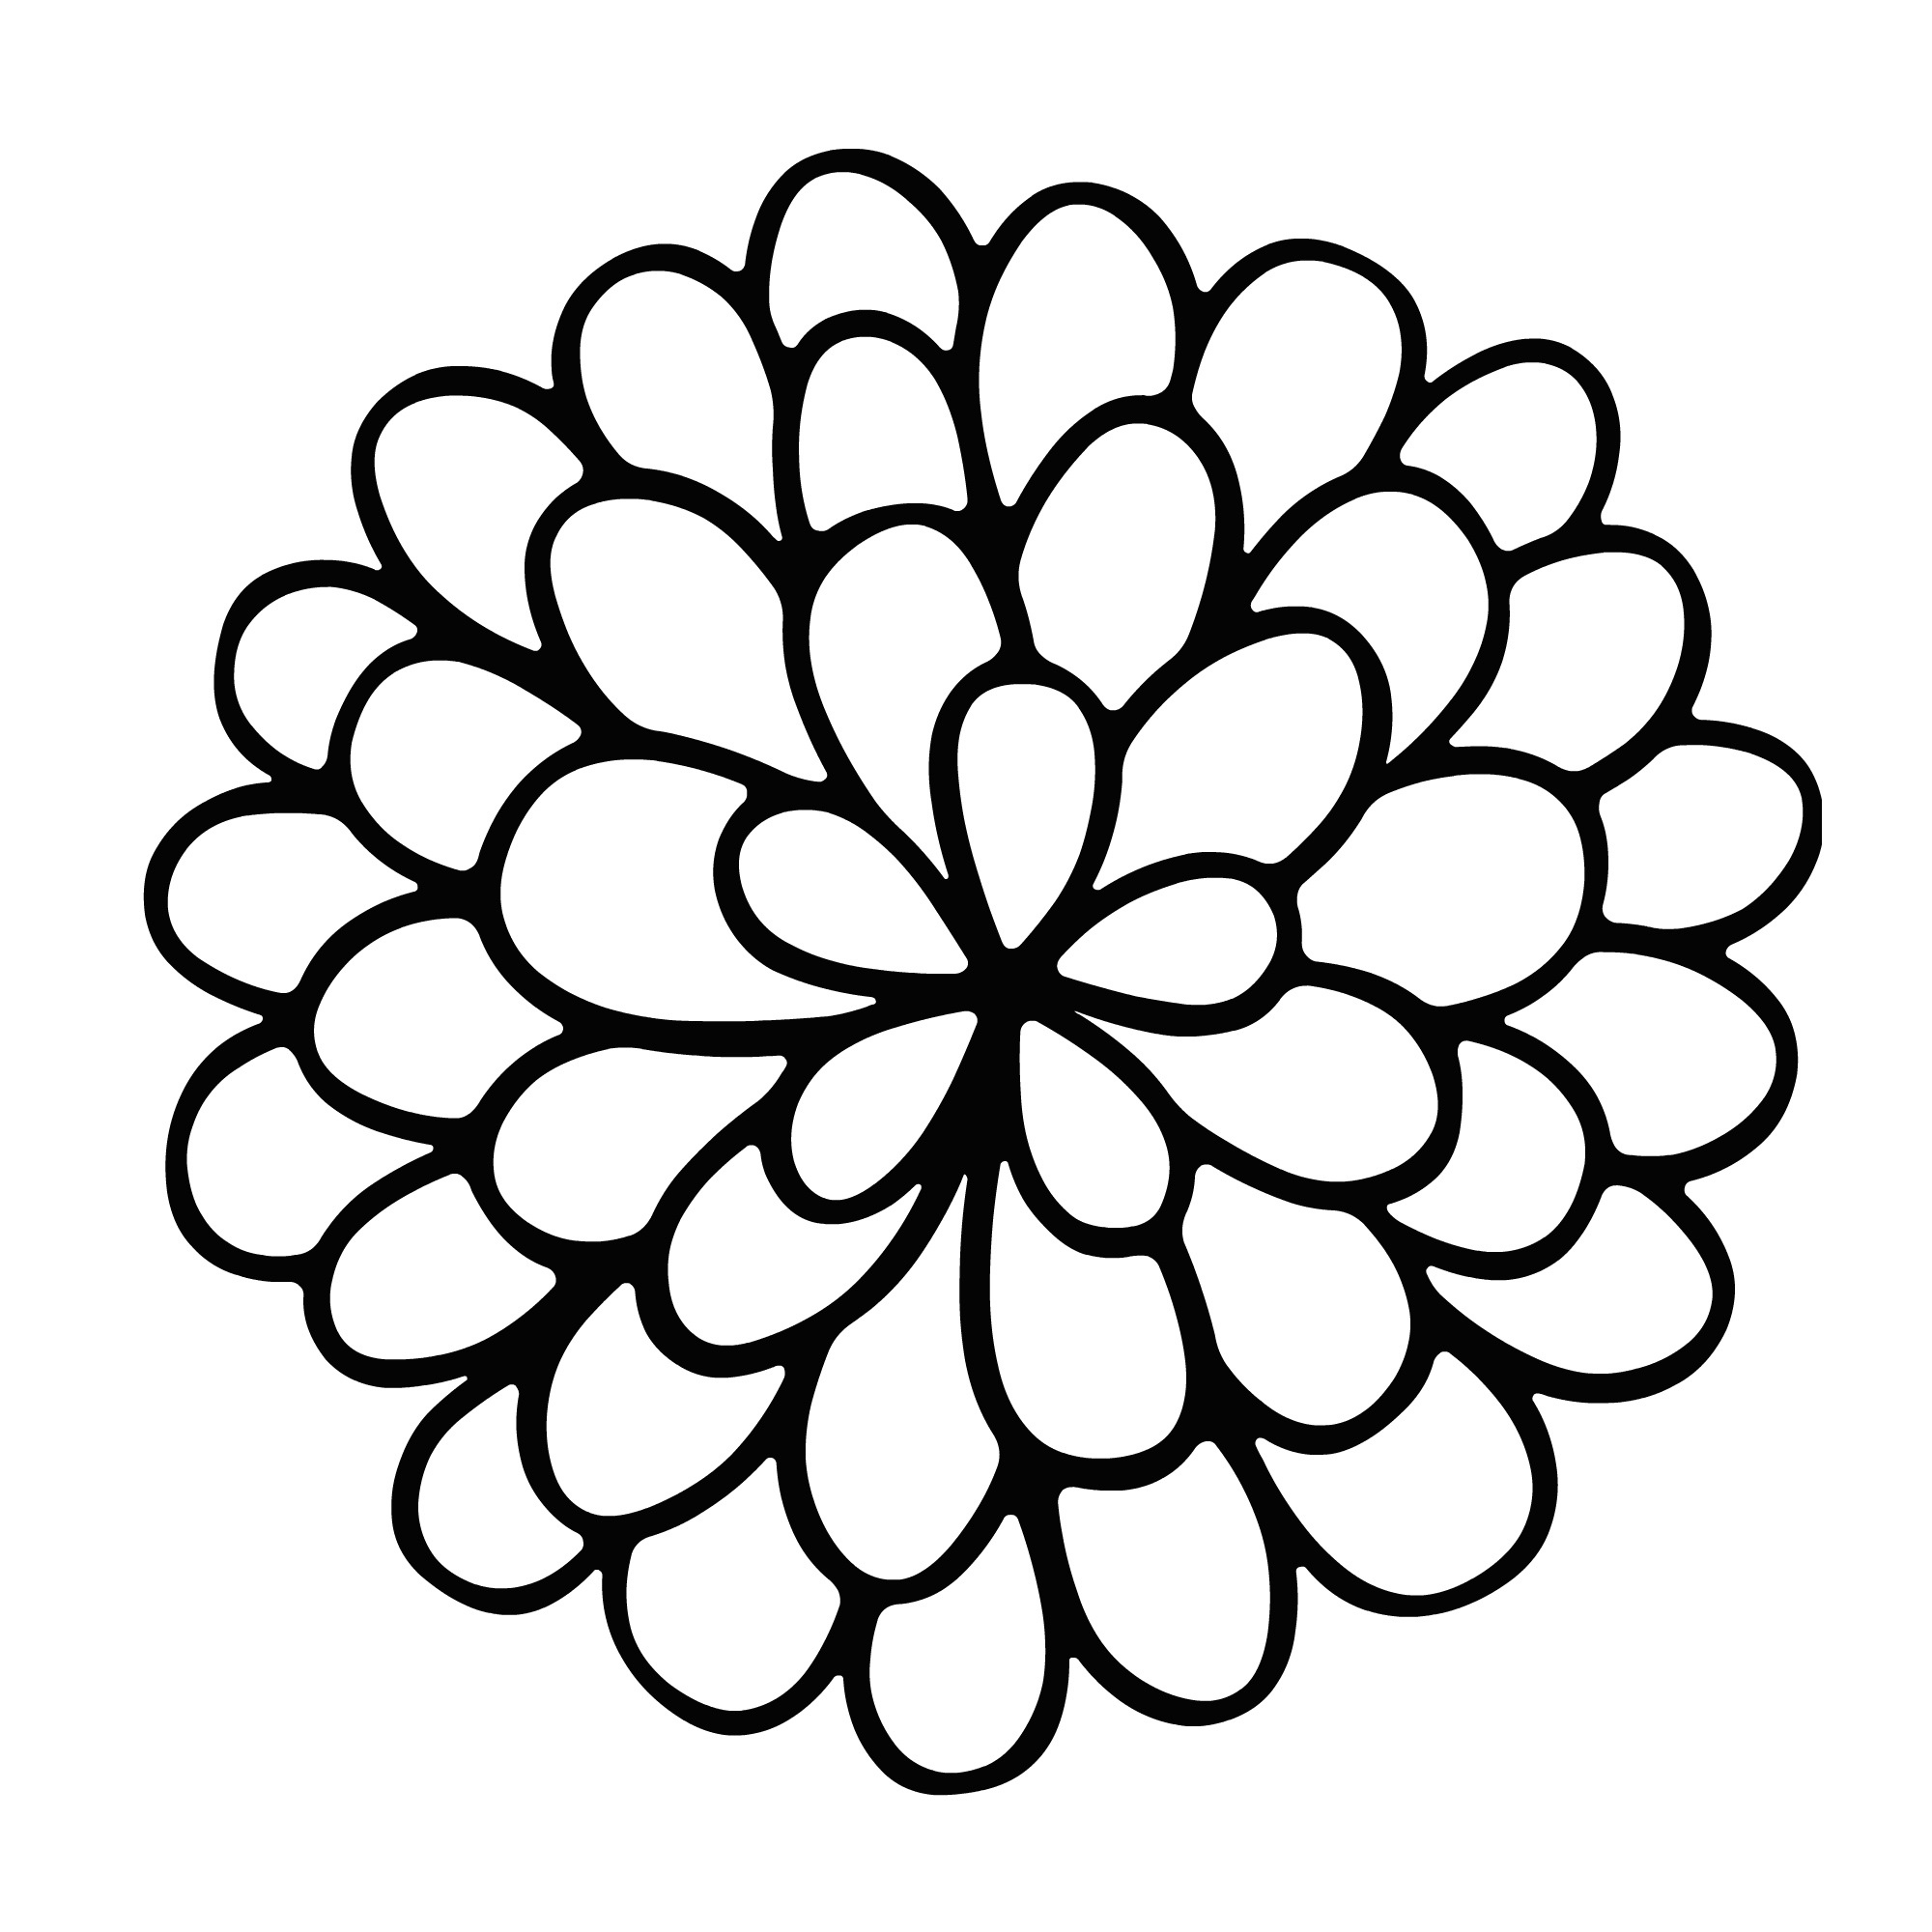 2000x2000 Marigold Flower Drawing Easy Sketch Coloring Page View Larger